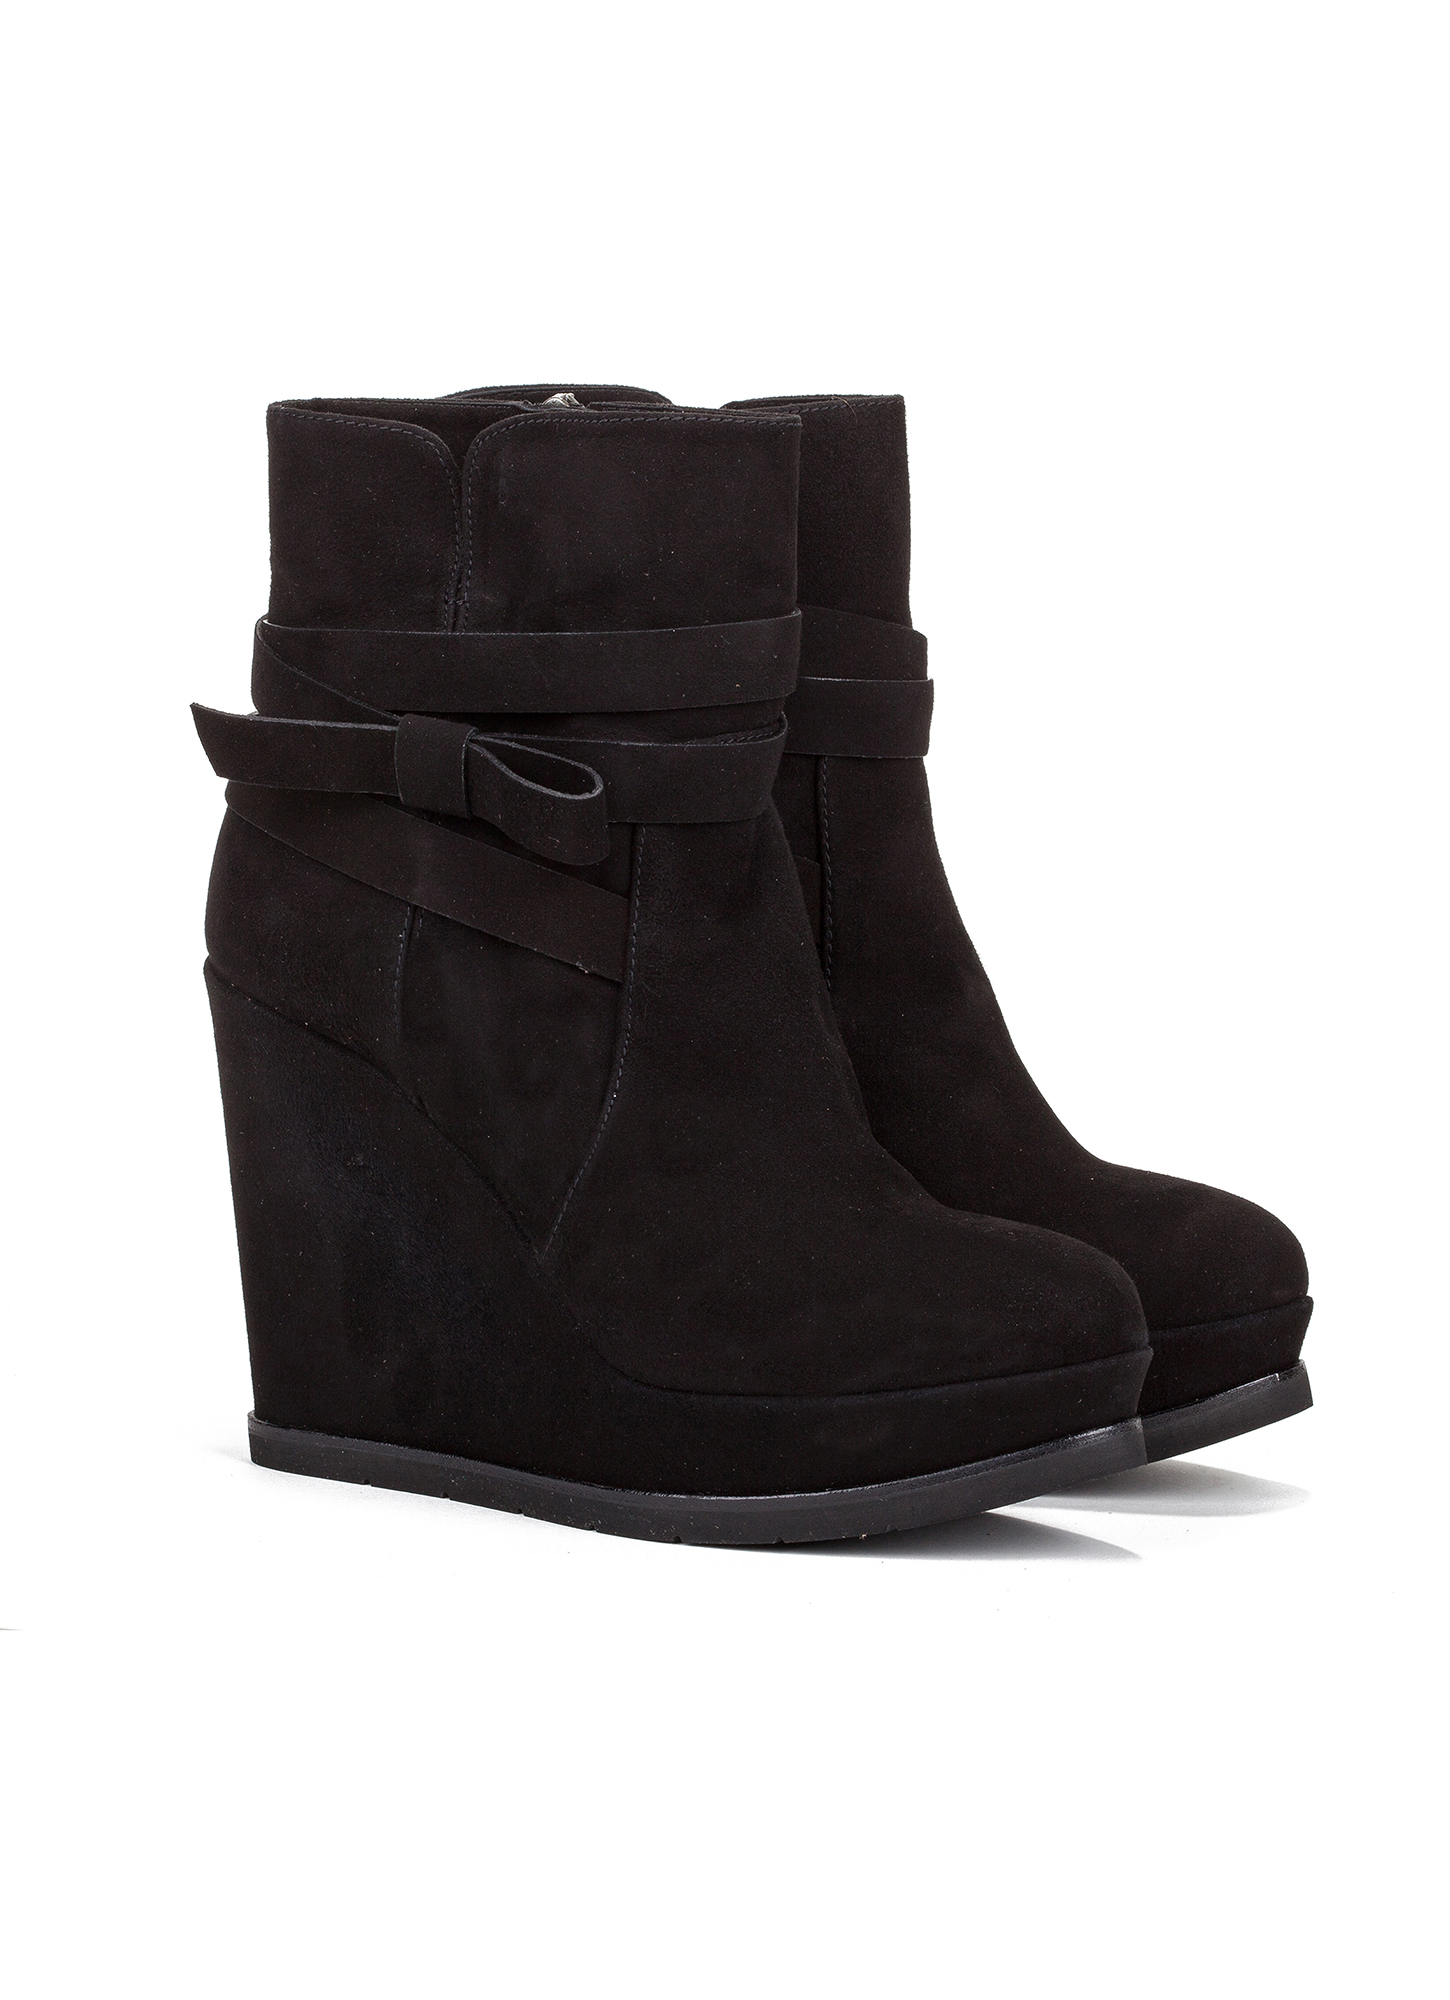 wedge ankle boots in black suede shoe store pura